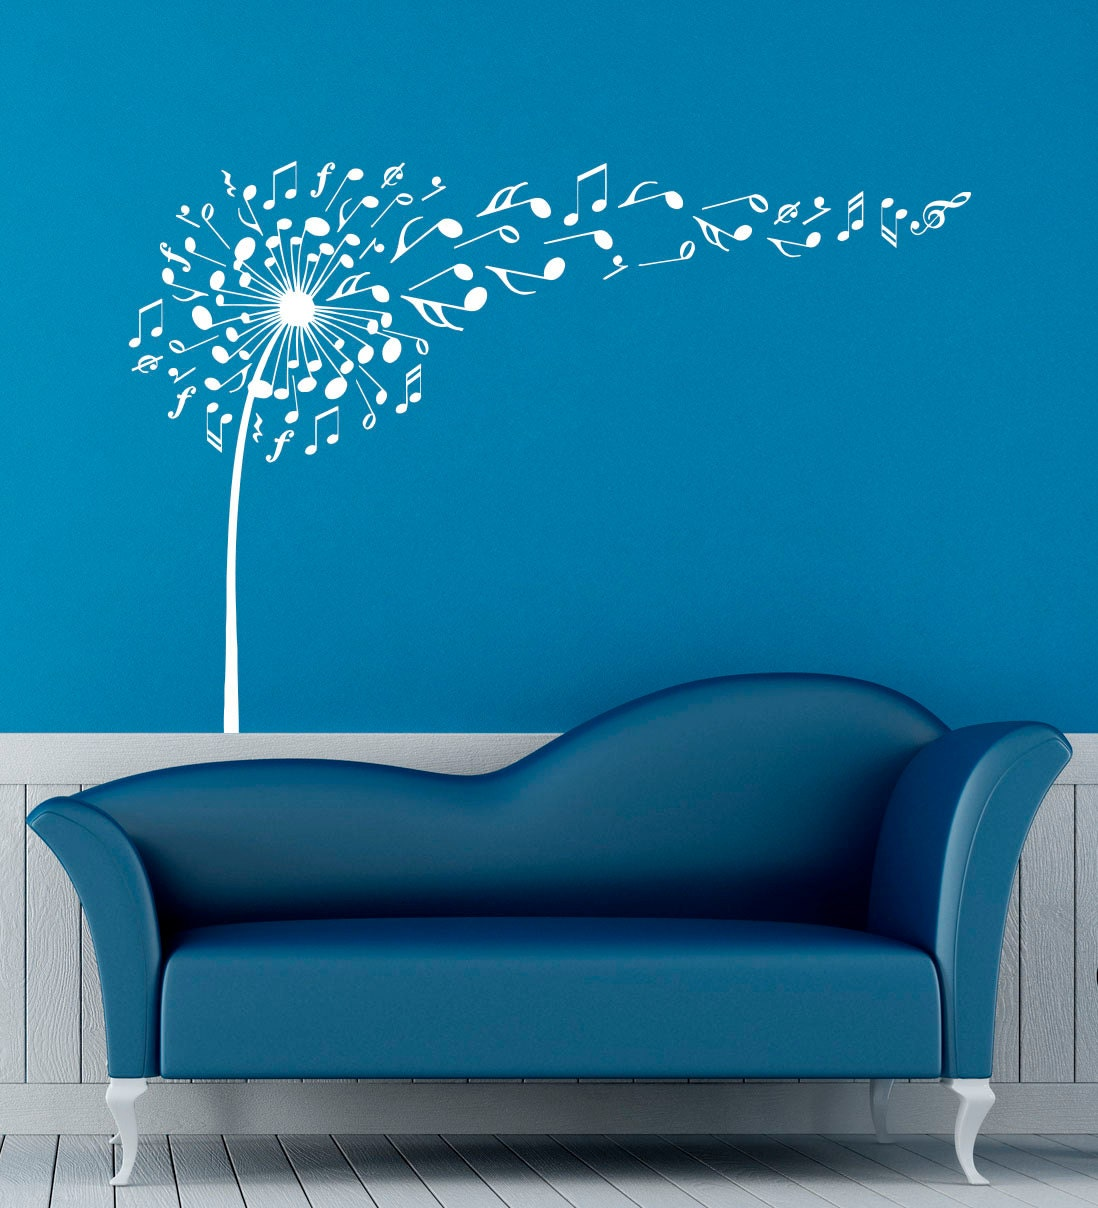 Music notes wall decal vinyl stickers music dandelion home zoom amipublicfo Images